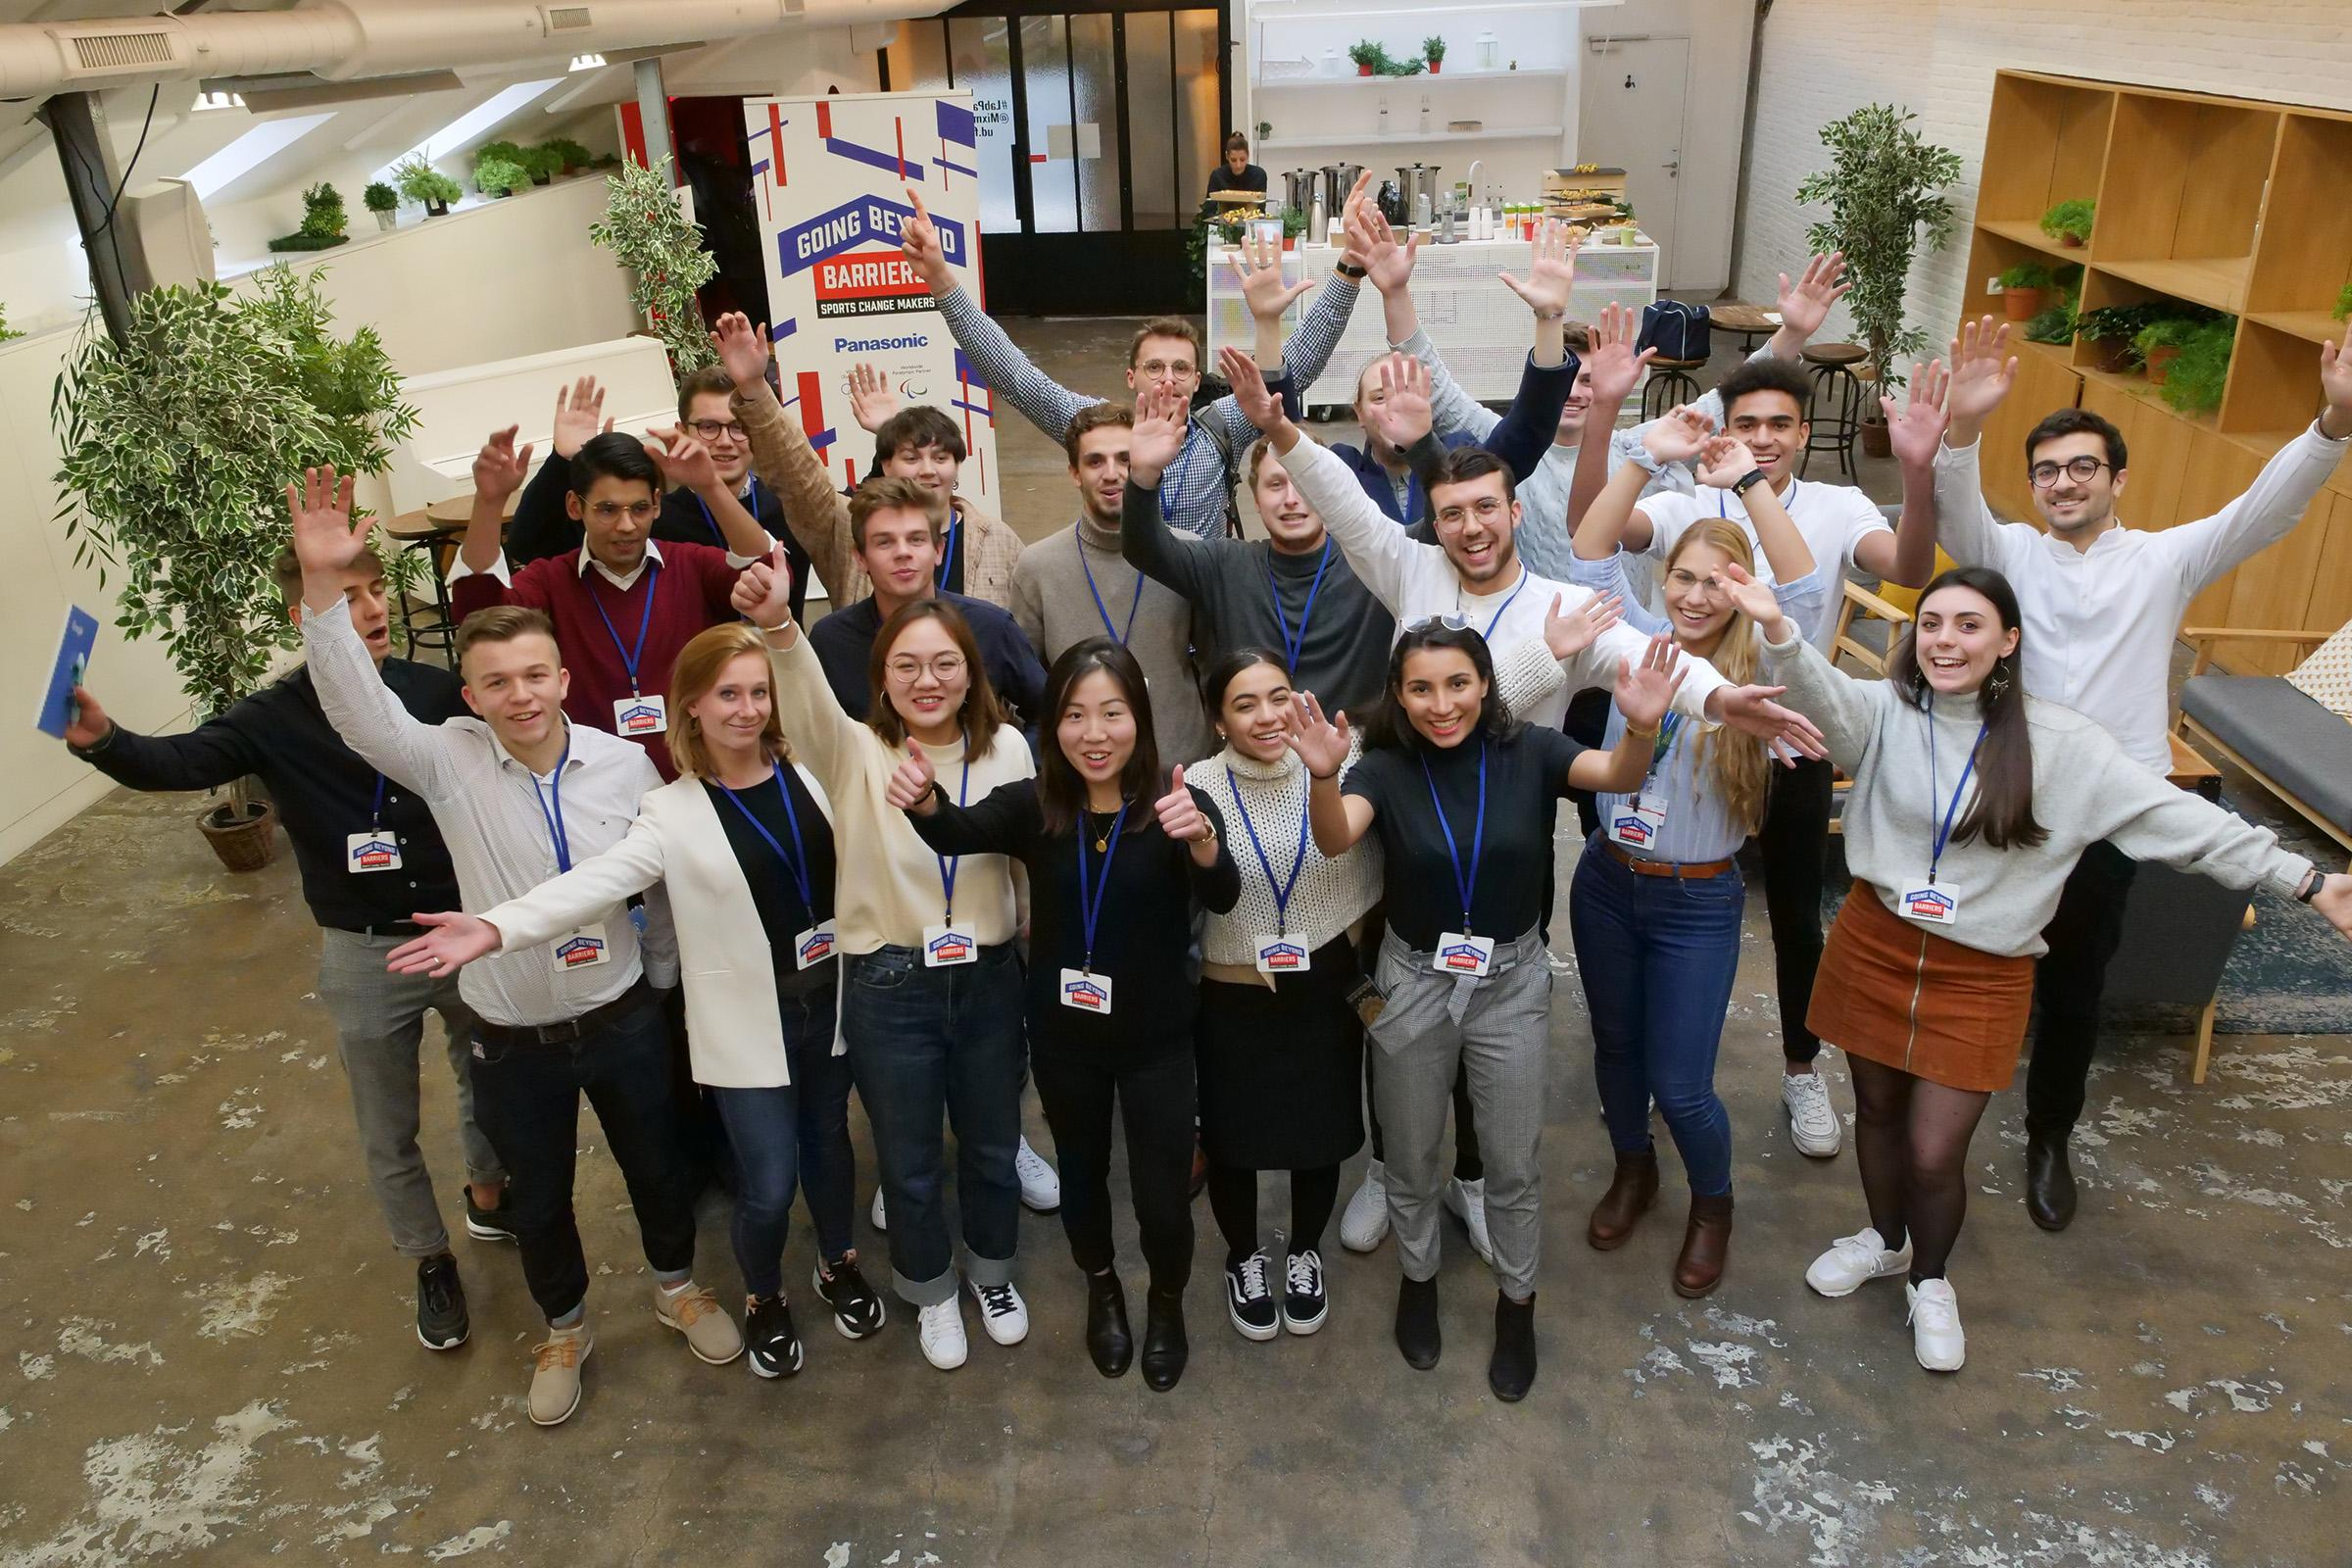 Photo: Ideathon held in Paris, Nov 29, 2019